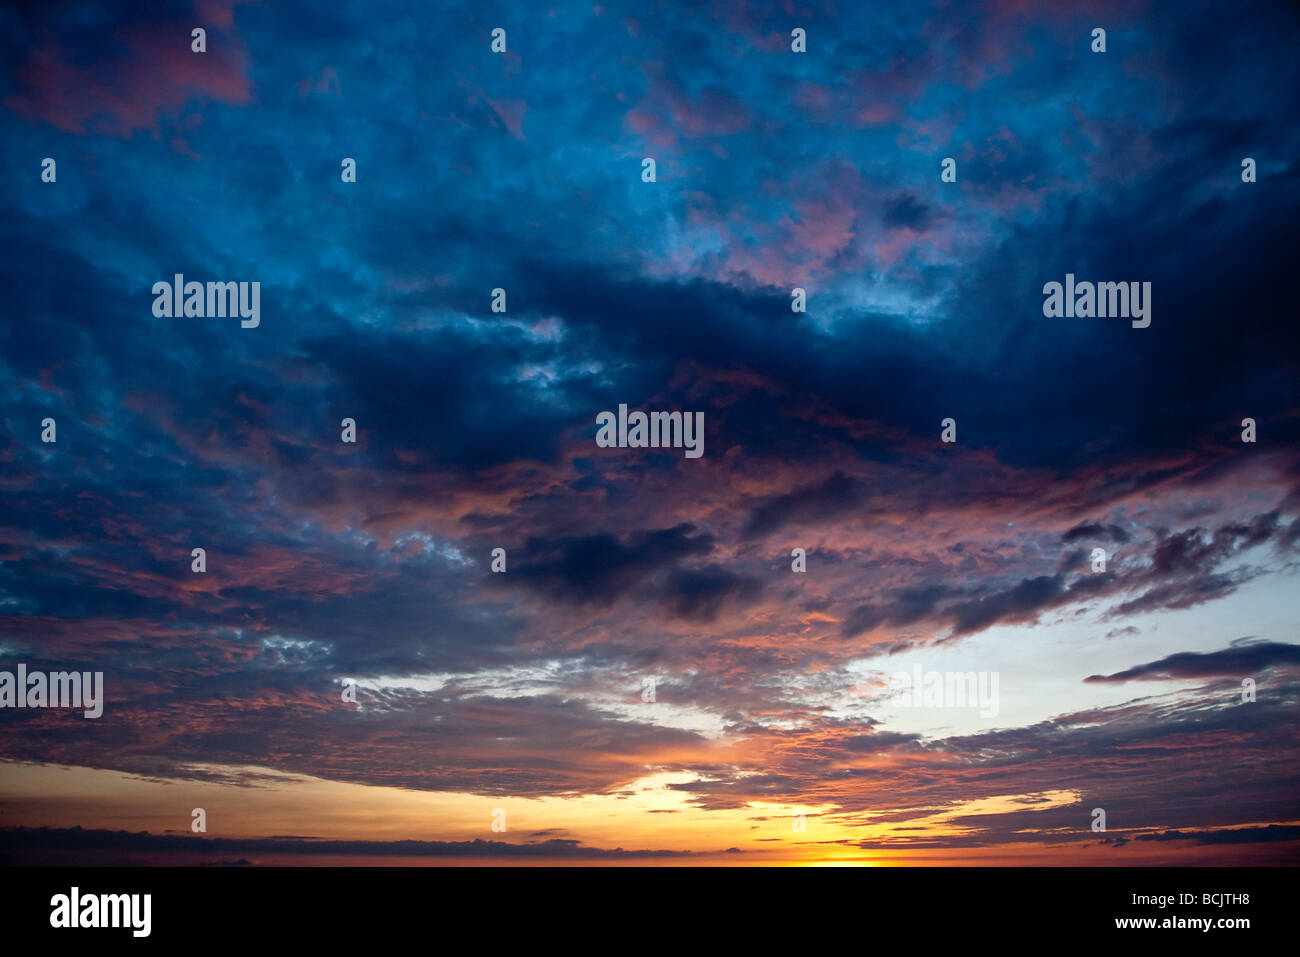 Cloudy sky at sunset - Stock Image